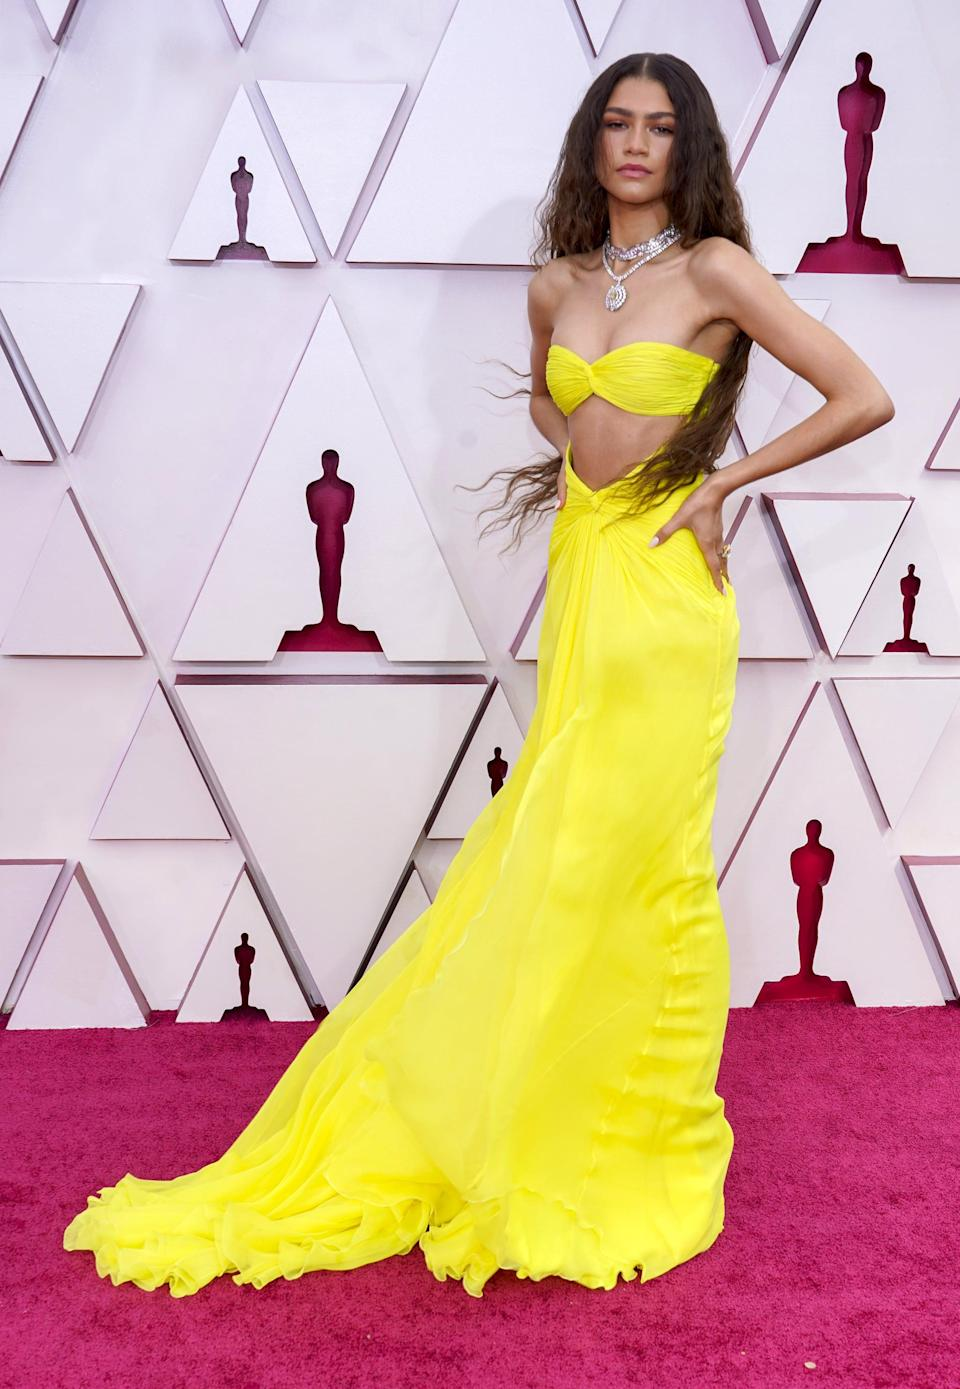 """<p><a href=""""https://www.popsugar.com/fashion/zendaya-yellow-valentino-oscars-dress-2021-48288757"""" class=""""link rapid-noclick-resp"""" rel=""""nofollow noopener"""" target=""""_blank"""" data-ylk=""""slk:Zendaya's 2021 Oscars gown"""">Zendaya's 2021 Oscars gown</a>, created by Valentino, not only glowed in the dark, but was an homage to Cher's cutout <a href=""""https://www.vogue.com/article/zendaya-oscars-valentino-dress-cher-reference"""" class=""""link rapid-noclick-resp"""" rel=""""nofollow noopener"""" target=""""_blank"""" data-ylk=""""slk:look from The Sonny and Cher Show"""">look from <strong>The Sonny and Cher Show</strong></a> in the 1970s. """"All that custom Bob Mackie that she owned, I want all of that. Cher, if you ever want to style me, Law [Roach] and I would love it,"""" <a class=""""link rapid-noclick-resp"""" href=""""https://www.popsugar.com/Zendaya"""" rel=""""nofollow noopener"""" target=""""_blank"""" data-ylk=""""slk:Zendaya"""">Zendaya</a> said, deeming the star her fashion icon. In fact, <a href=""""https://www.popsugar.com/fashion/zendaya-referencing-celebrities-on-the-red-carpet-48397285#photo-48397375"""" class=""""link rapid-noclick-resp"""" rel=""""nofollow noopener"""" target=""""_blank"""" data-ylk=""""slk:Cher also wore a yellow Bob Mackie two-piece"""">Cher also wore a yellow Bob Mackie two-piece</a> to the Oscars in 1973!</p>"""